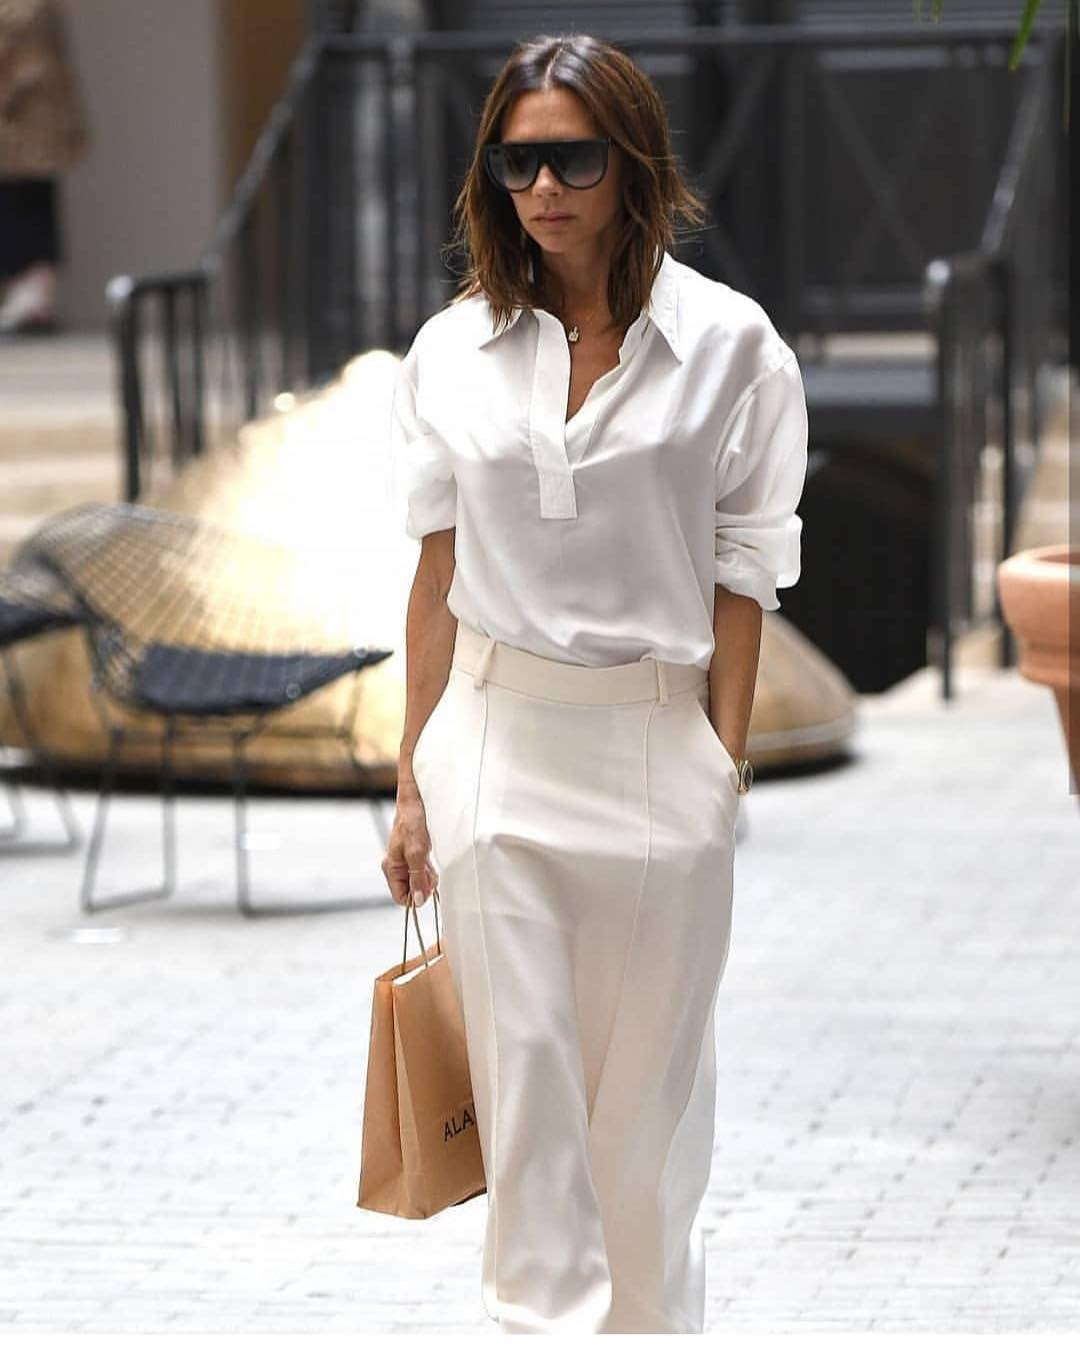 All White Outfit Worn By Victoria Beckham For Summer 2020